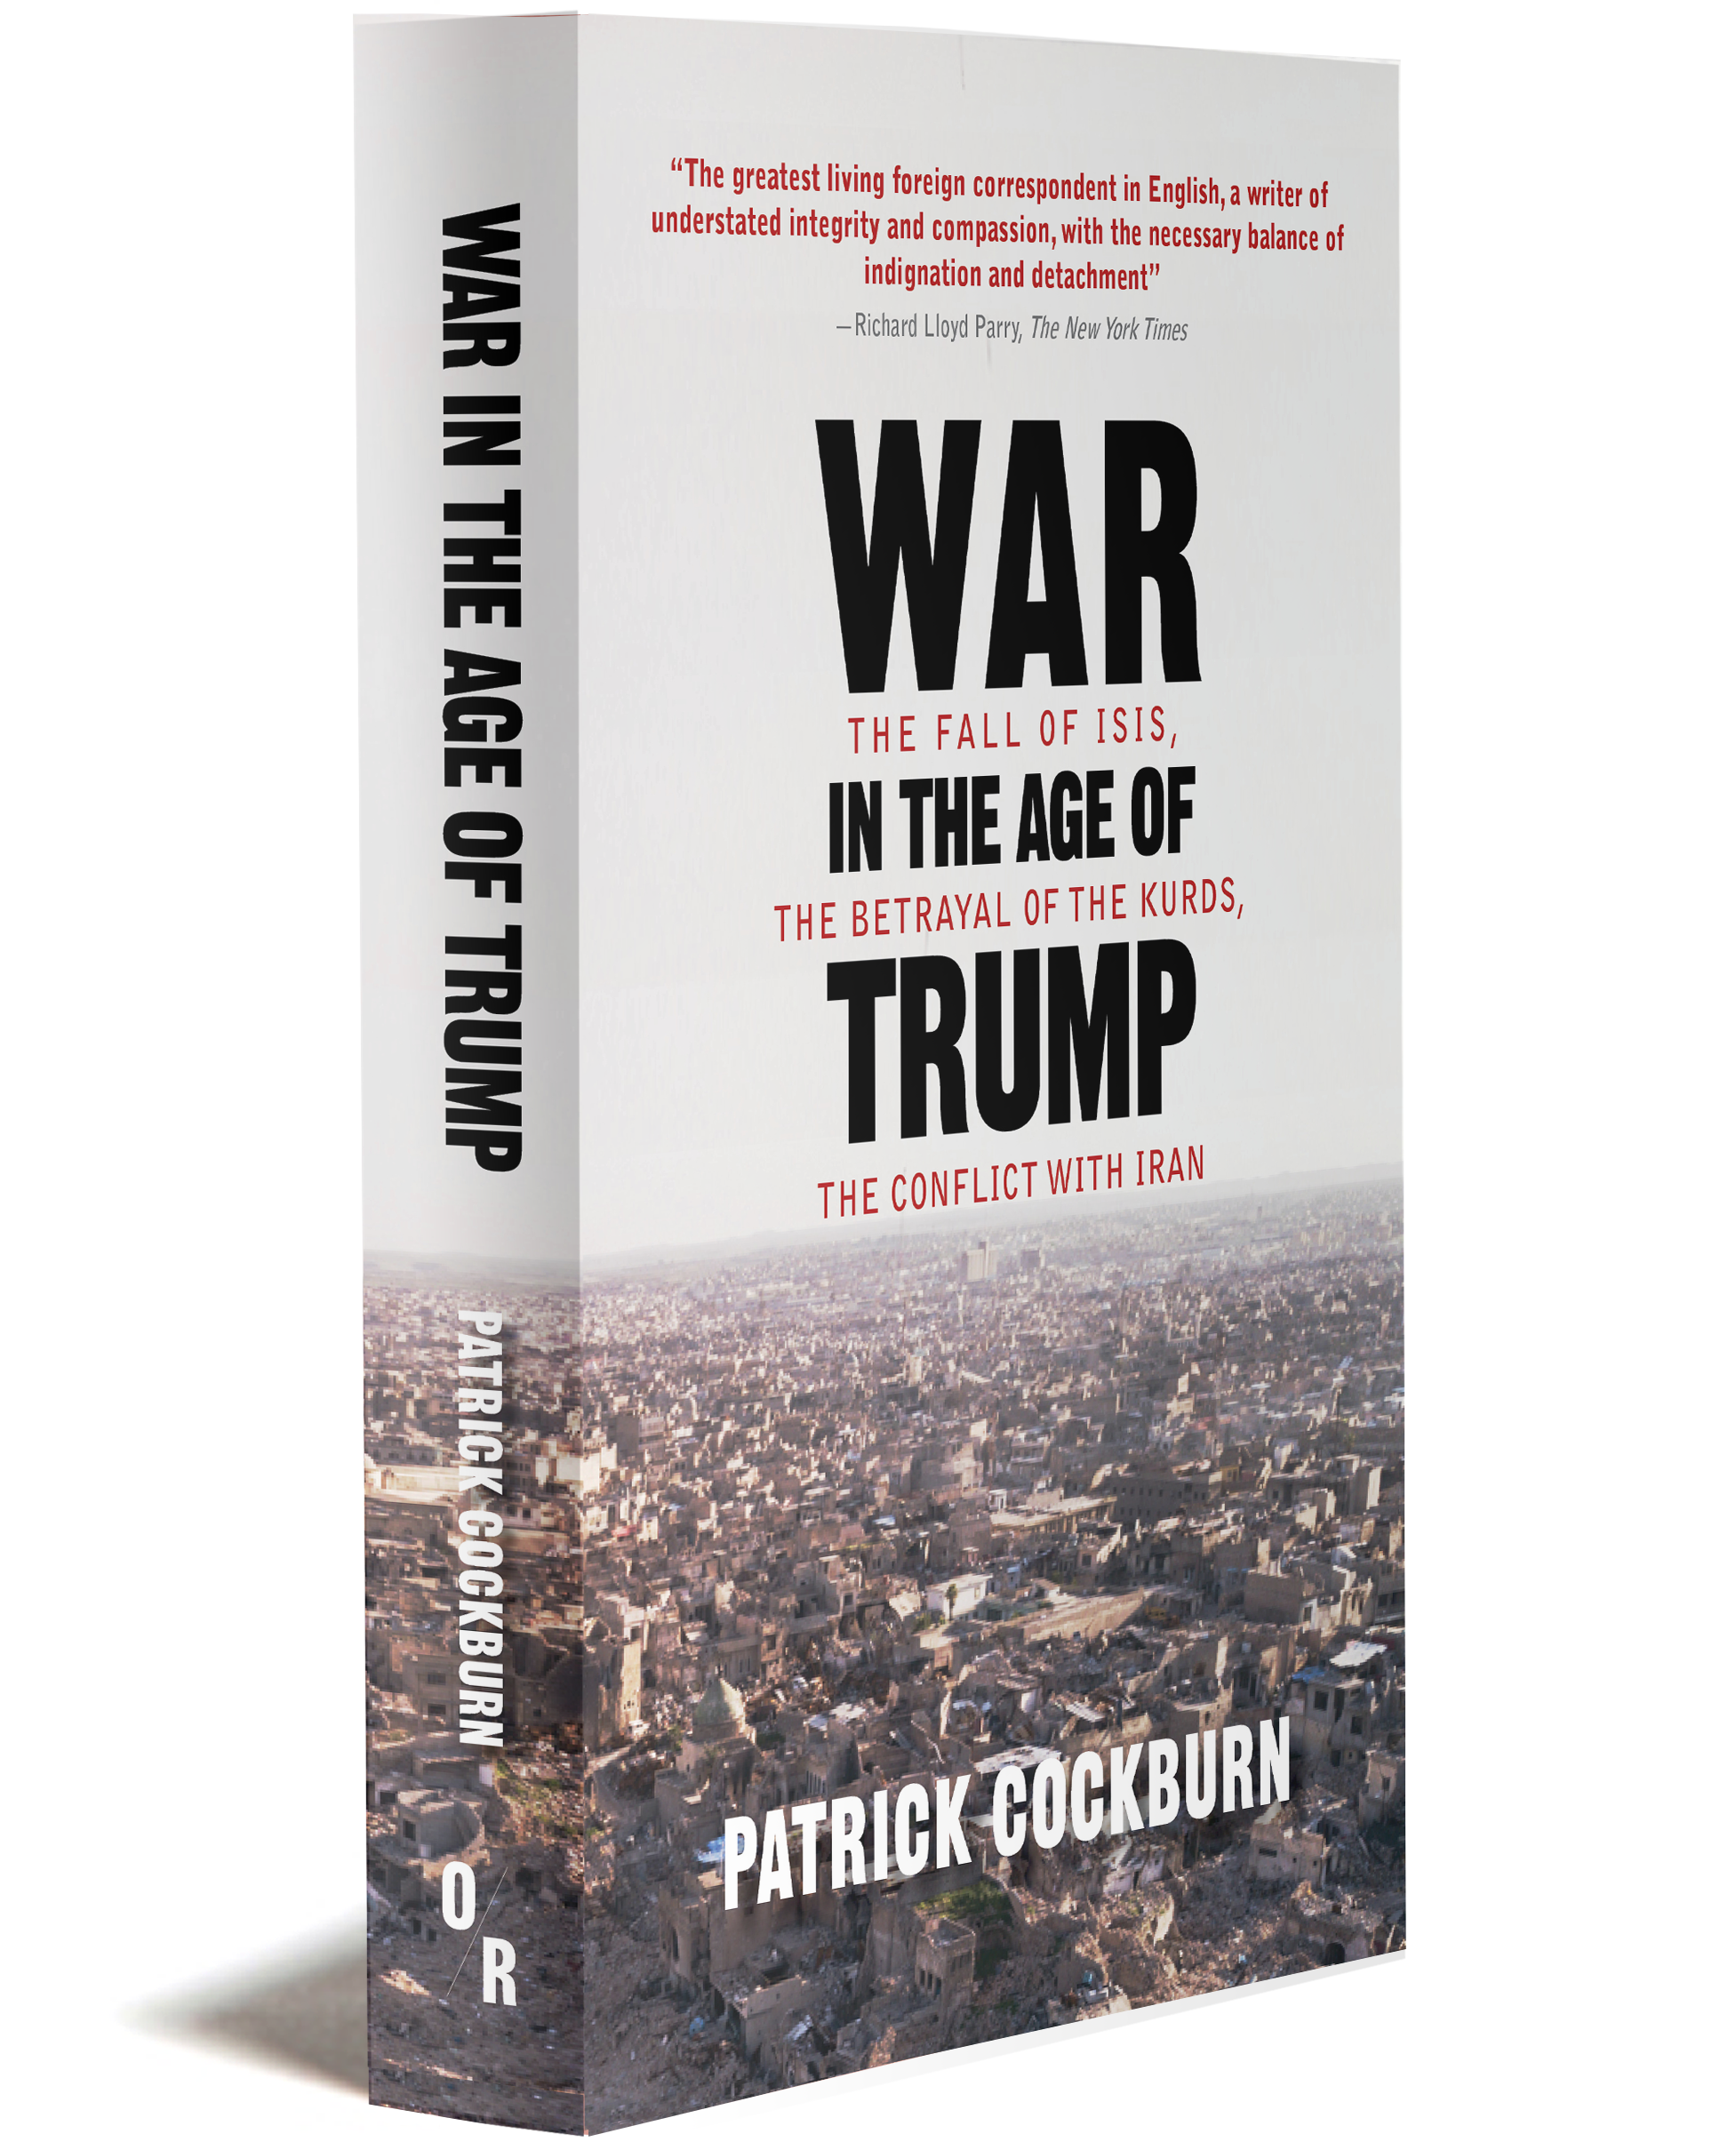 War in the age of Trump 3D cover